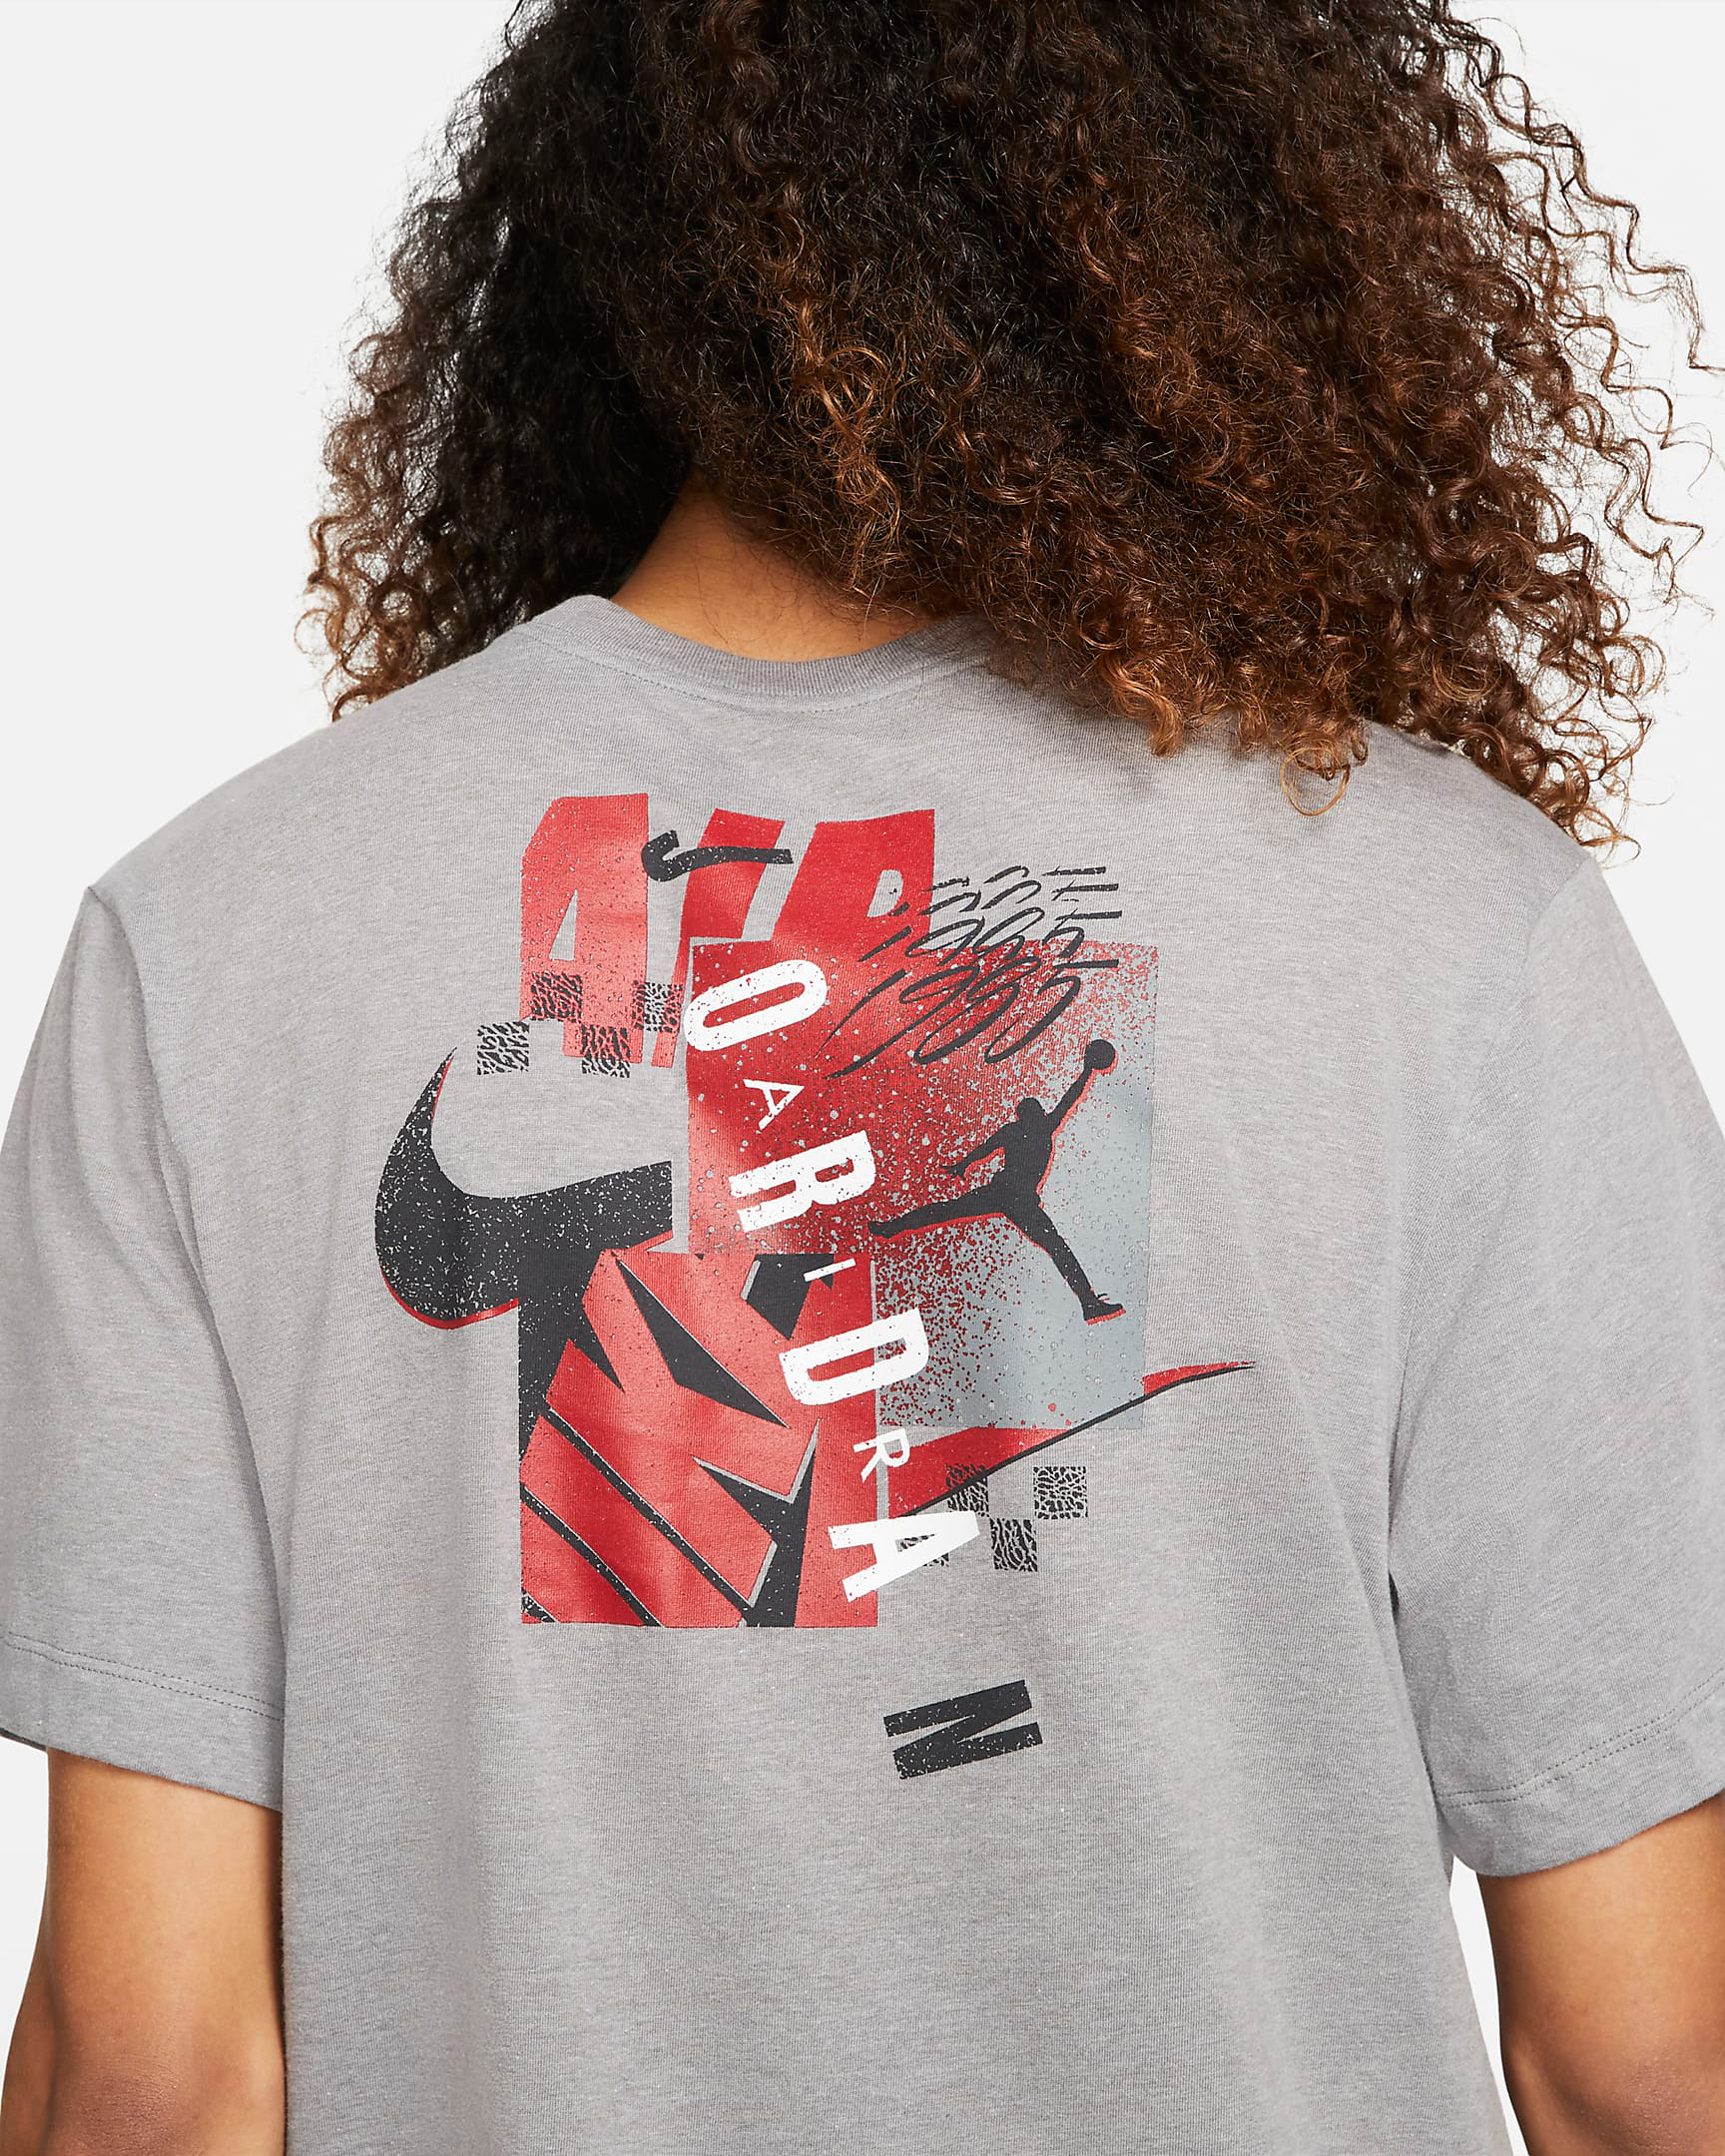 jordan-air-futura-shirt-grey-black-red-summer-2021-2